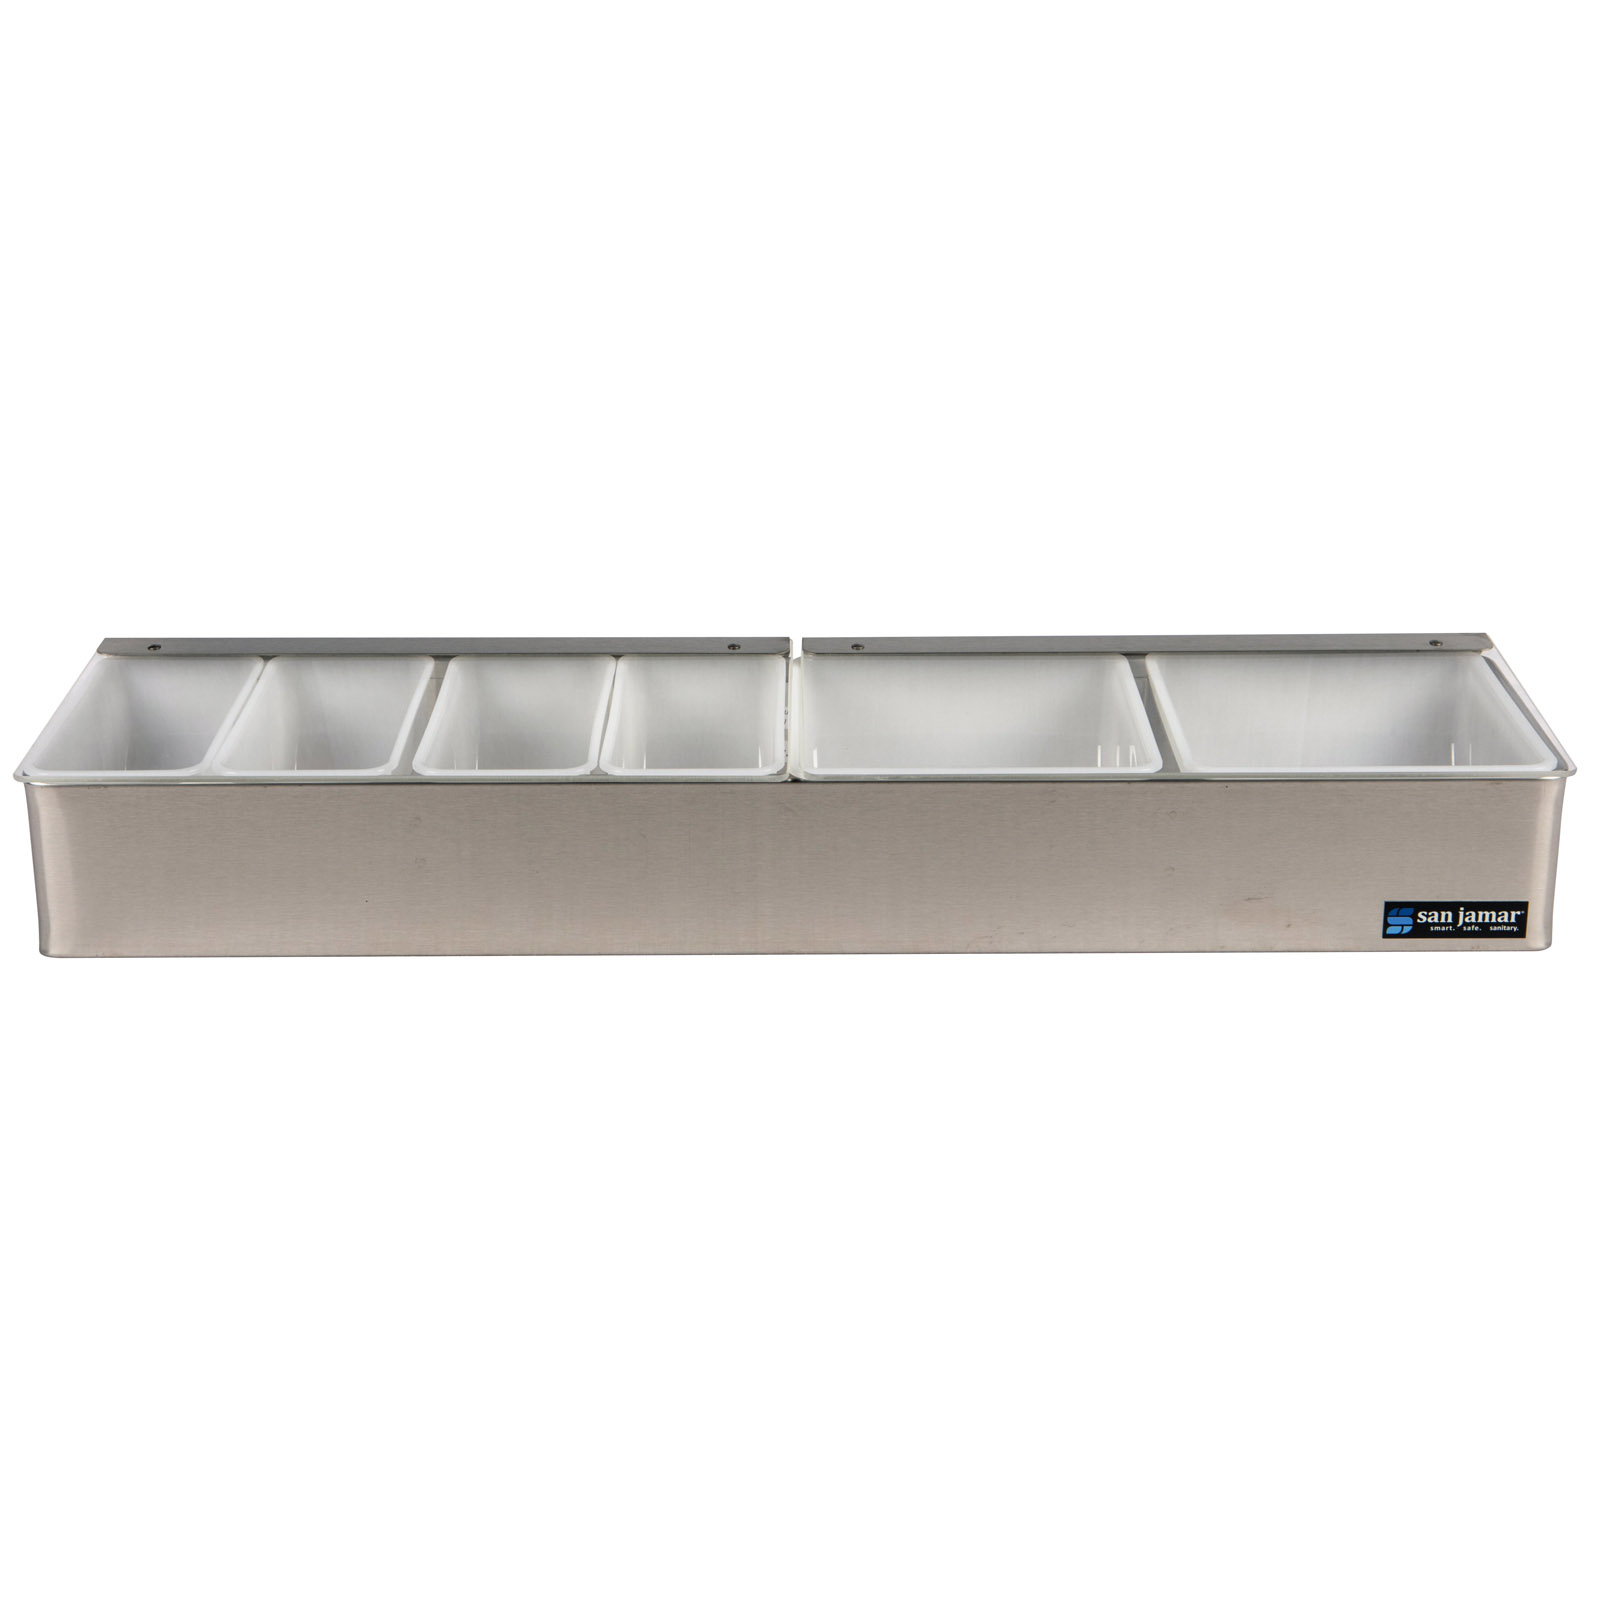 San Jamar B4246L bar condiment holder